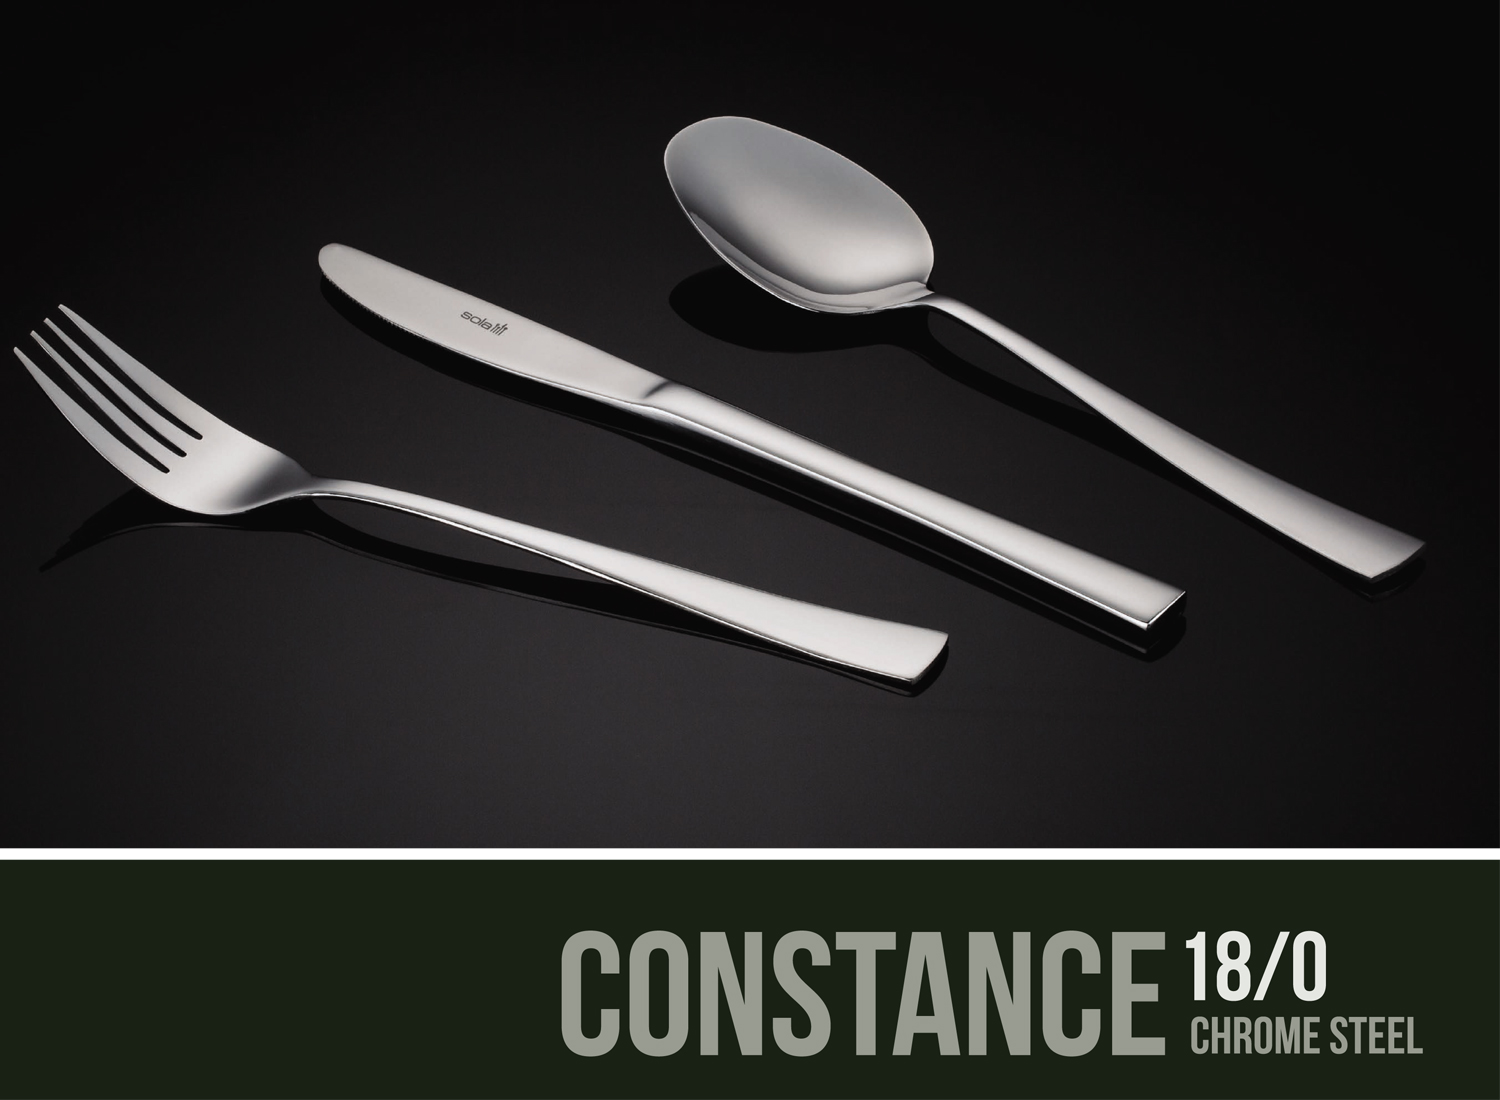 Constance Chrome Steel